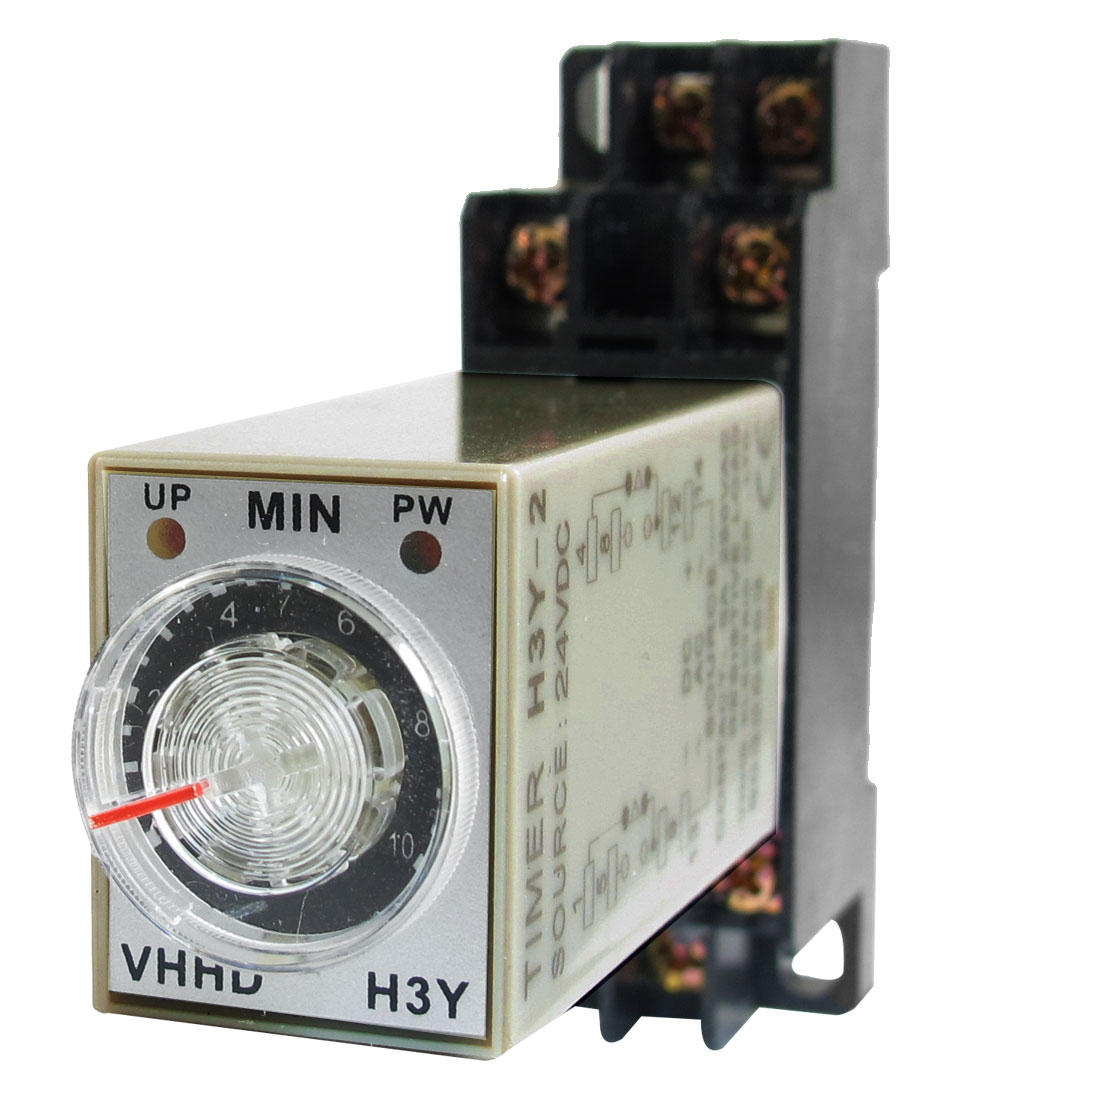 DC 24V 0-10 Minute 10m Timer Power On Delay Time Relay 8 Pin H3Y-2 w Socket